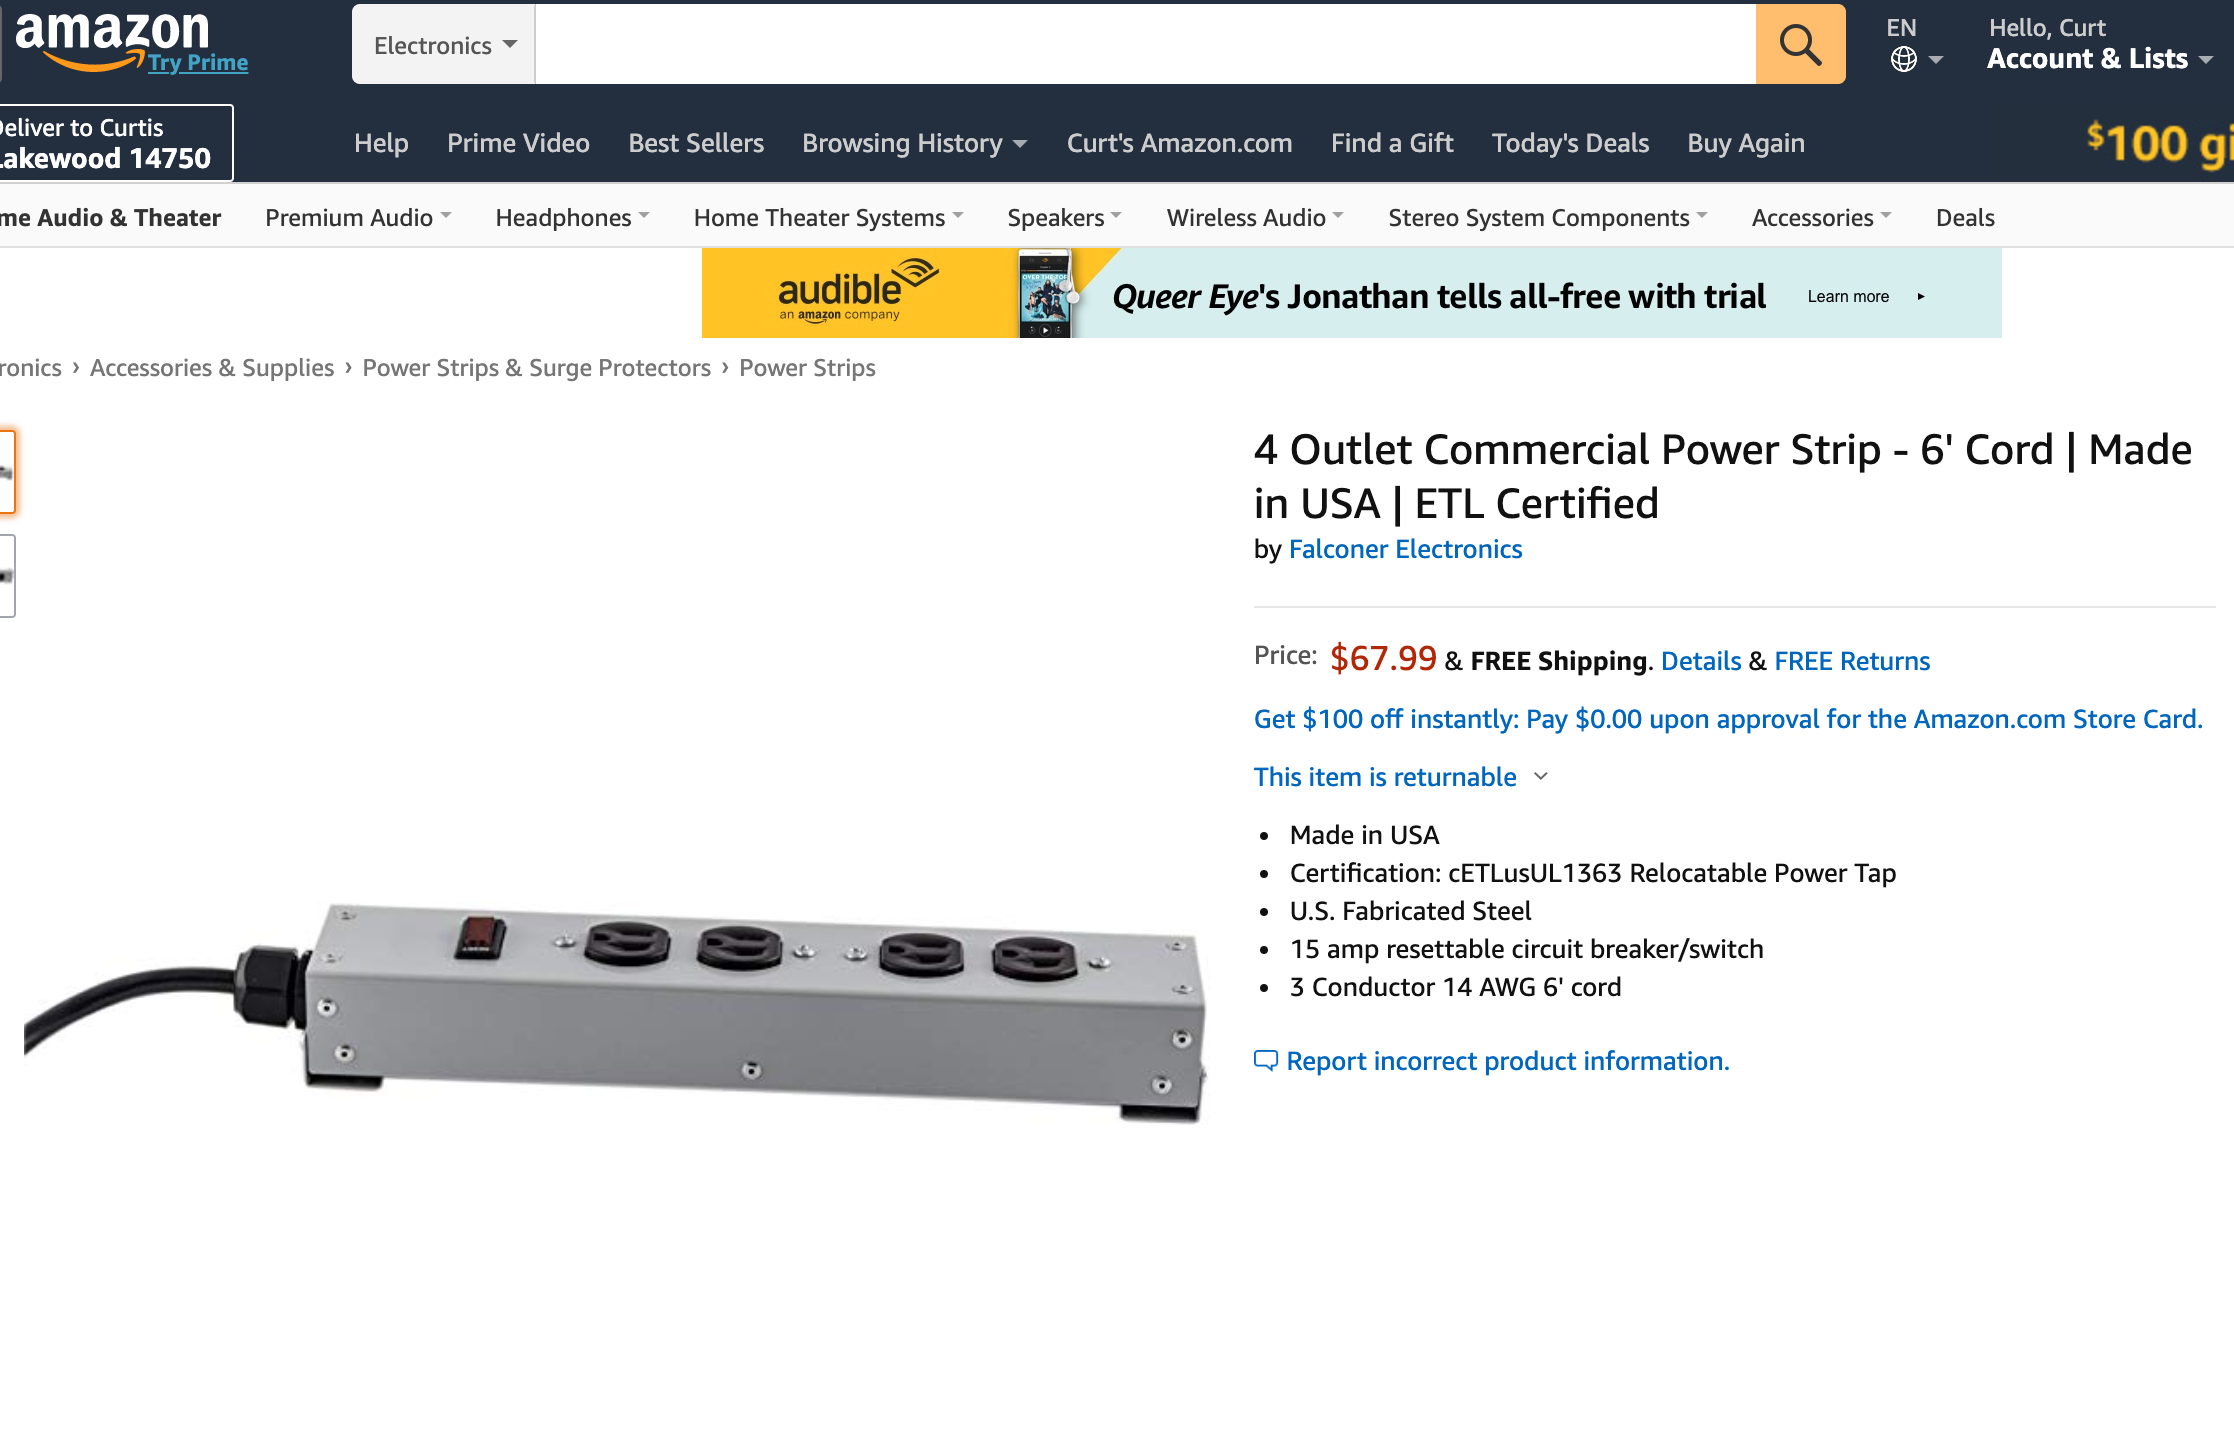 Commercial Power Strips on Amazon